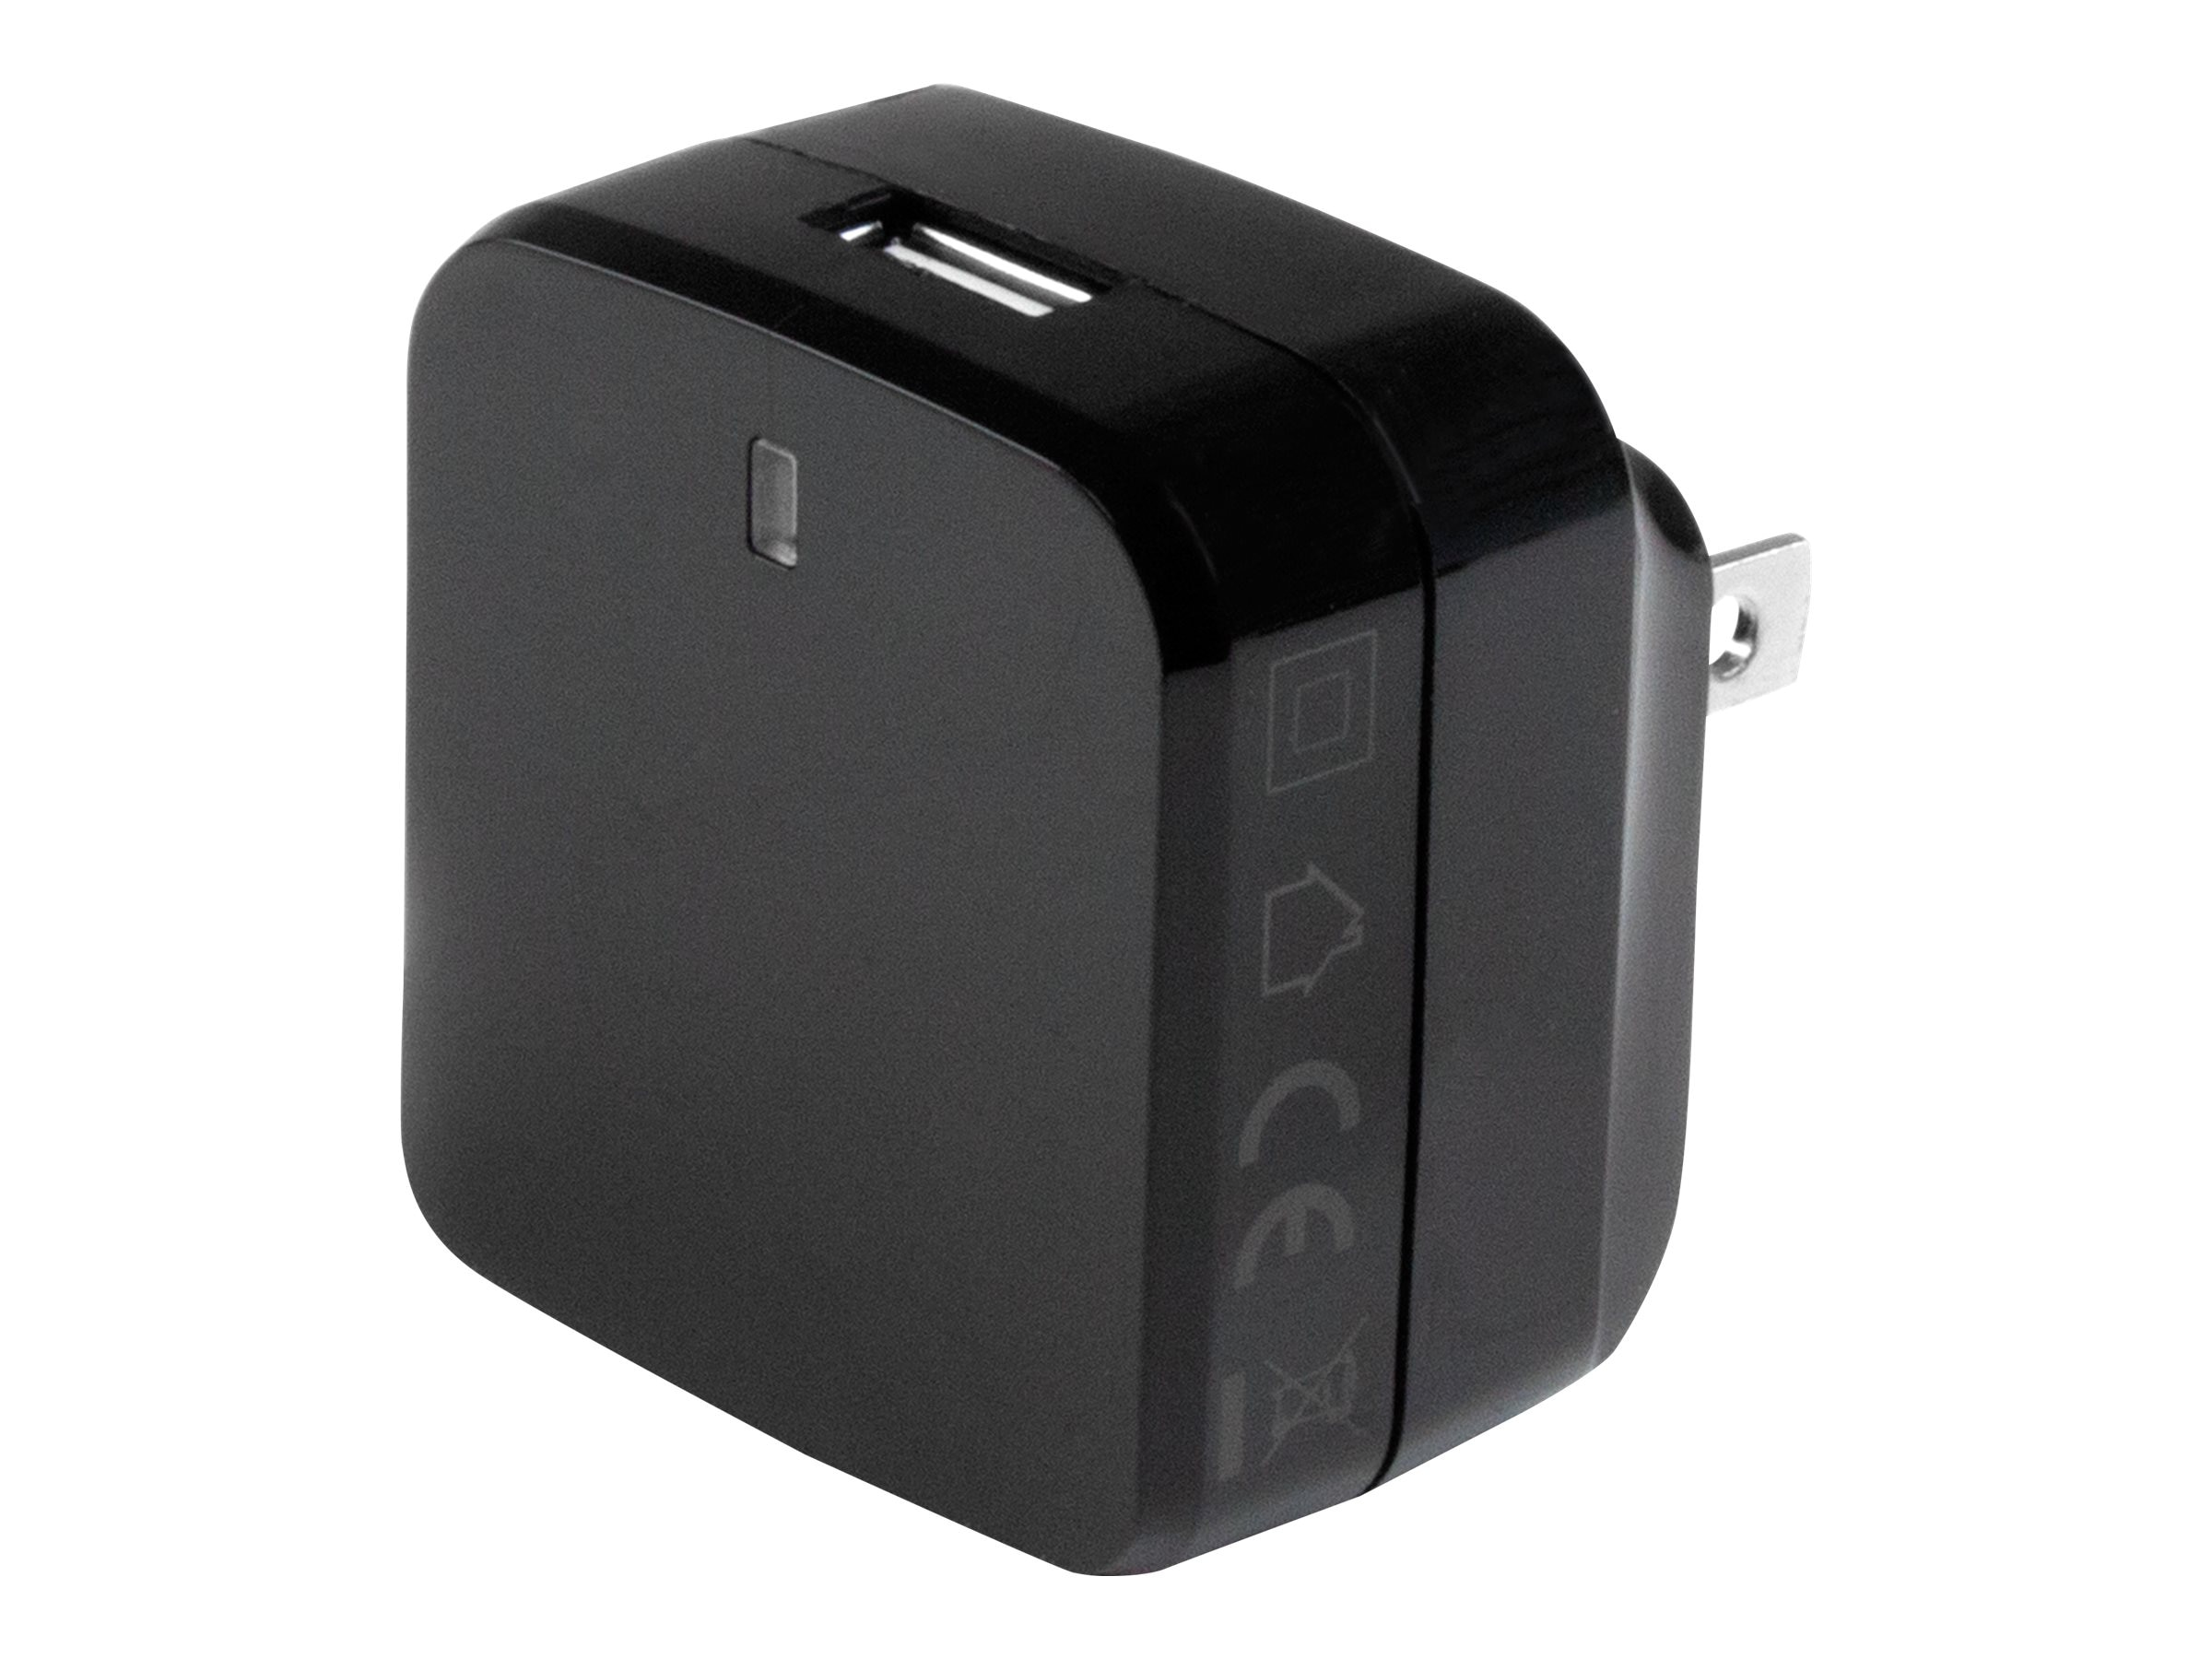 StarTech.com USB Wall Charger w  Quick Charge 2.0 for International Travel, Black, USB1PACVBK